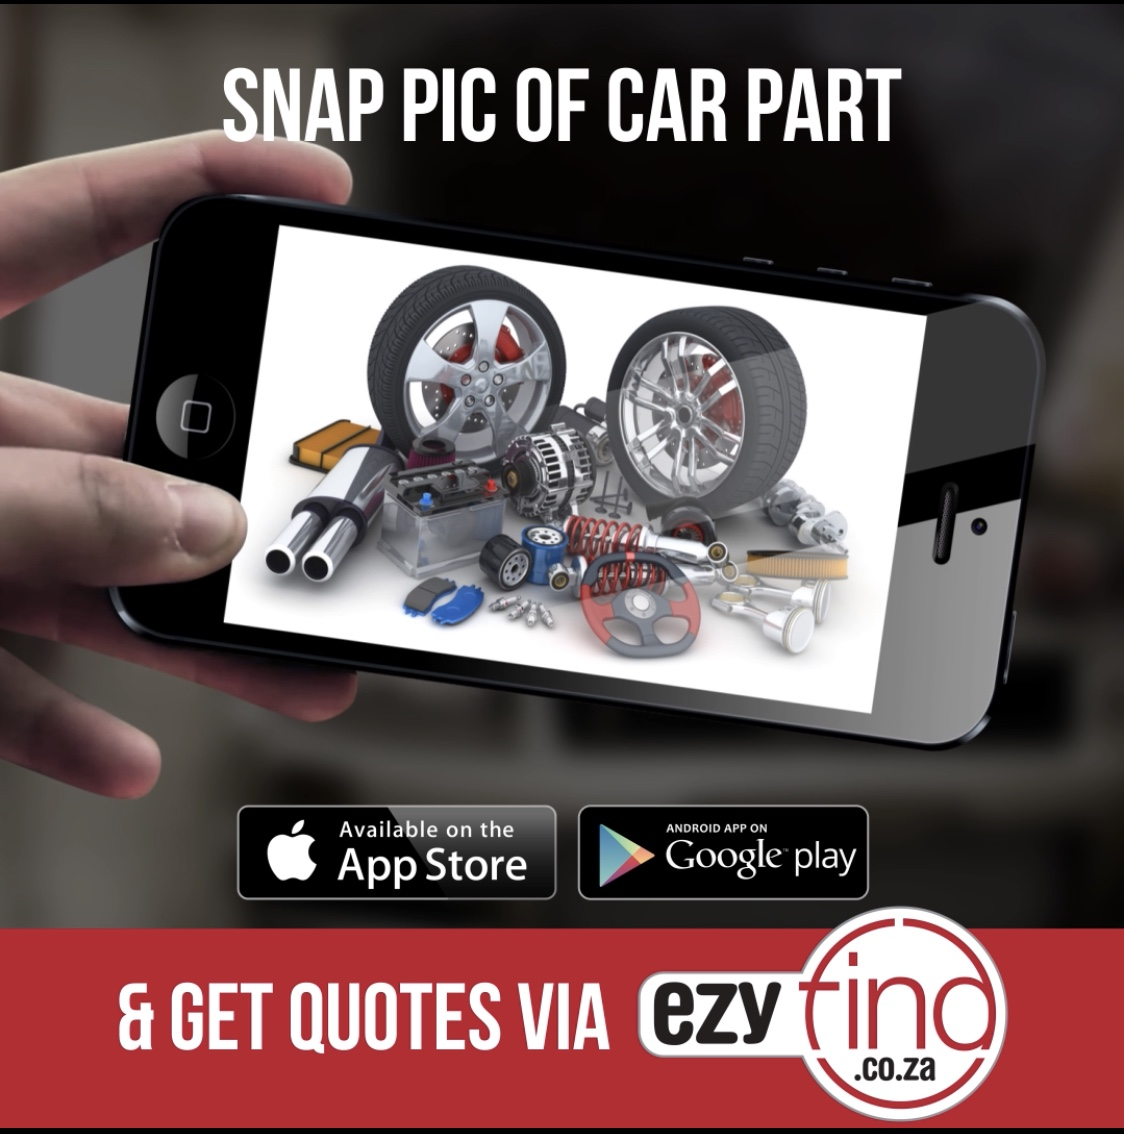 snap picture of car part and obtain multiple quotes